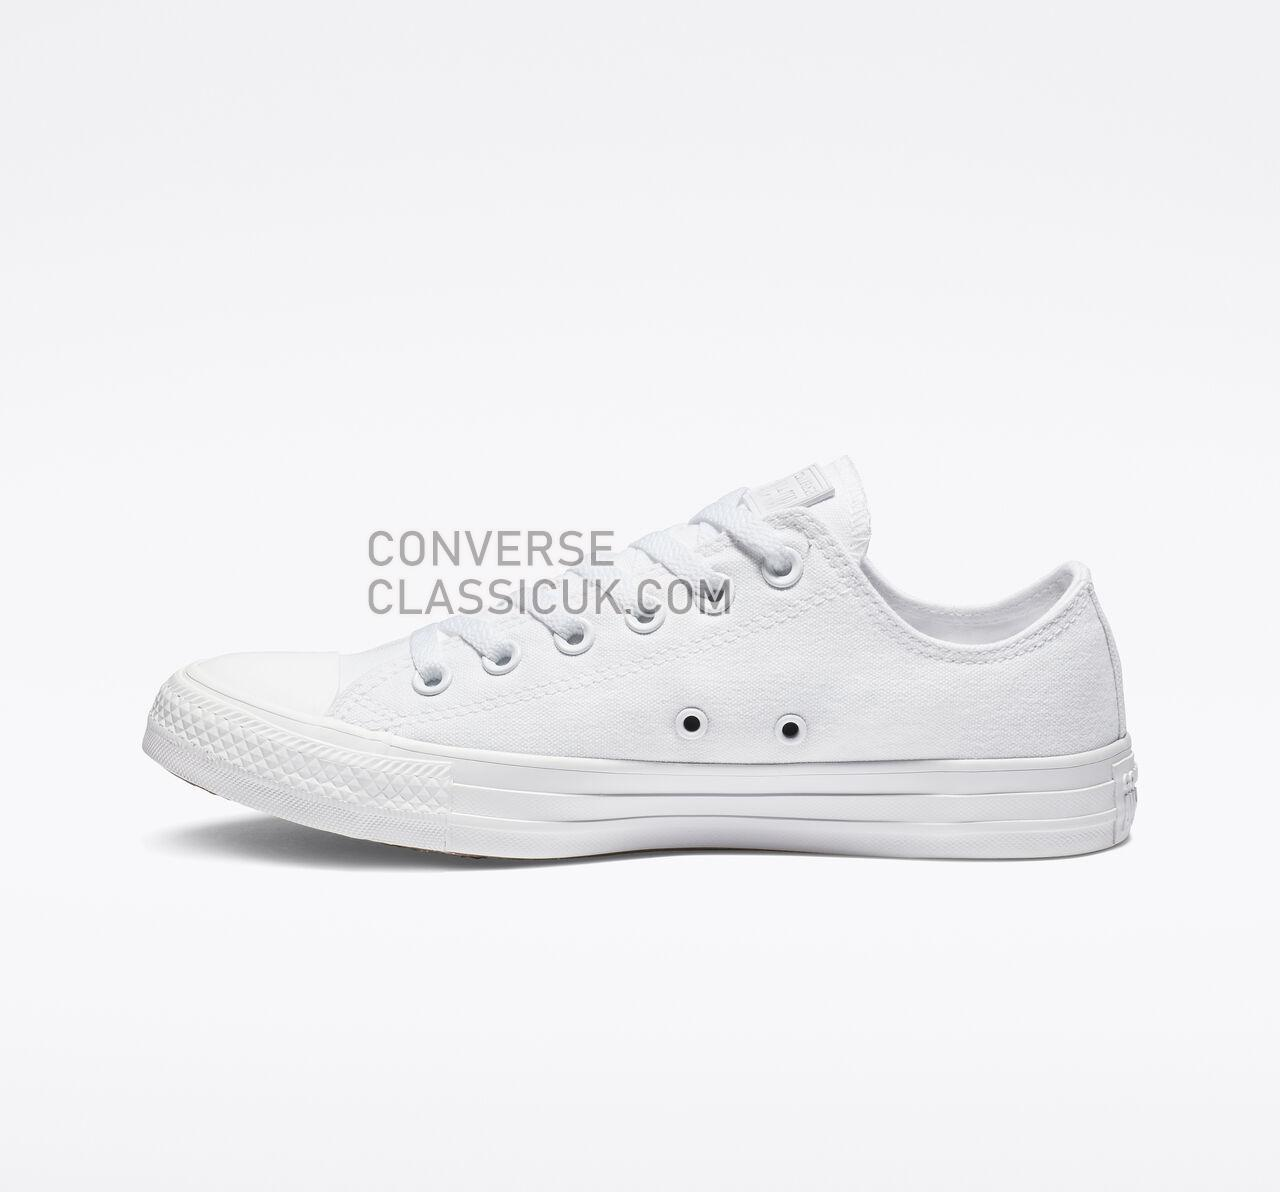 Converse Chuck Taylor All Star Low Top Mens Womens Unisex 1U647F White Monochrome Shoes